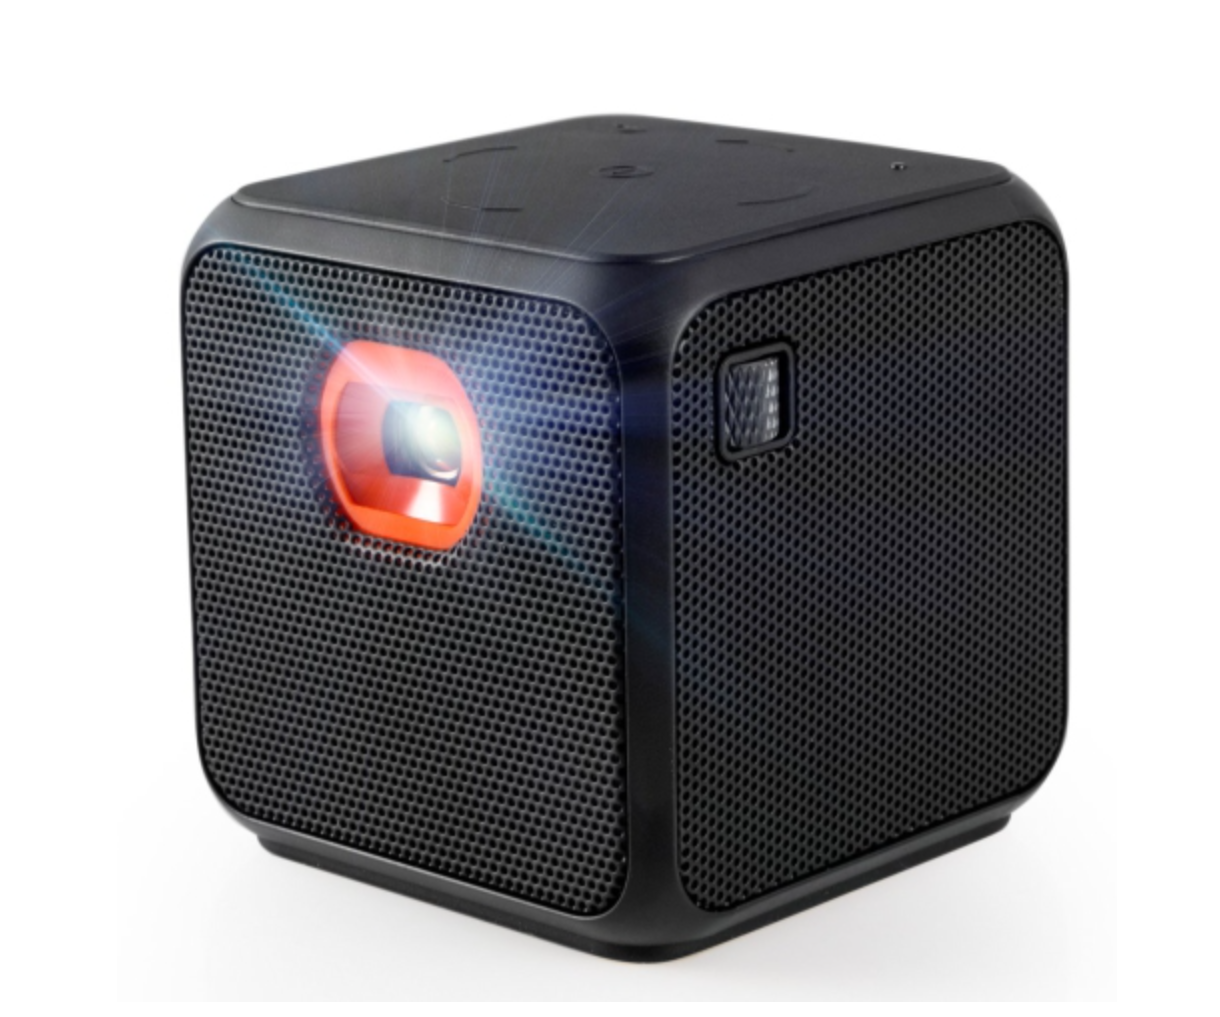 gifts for the cook - xprit portable projector